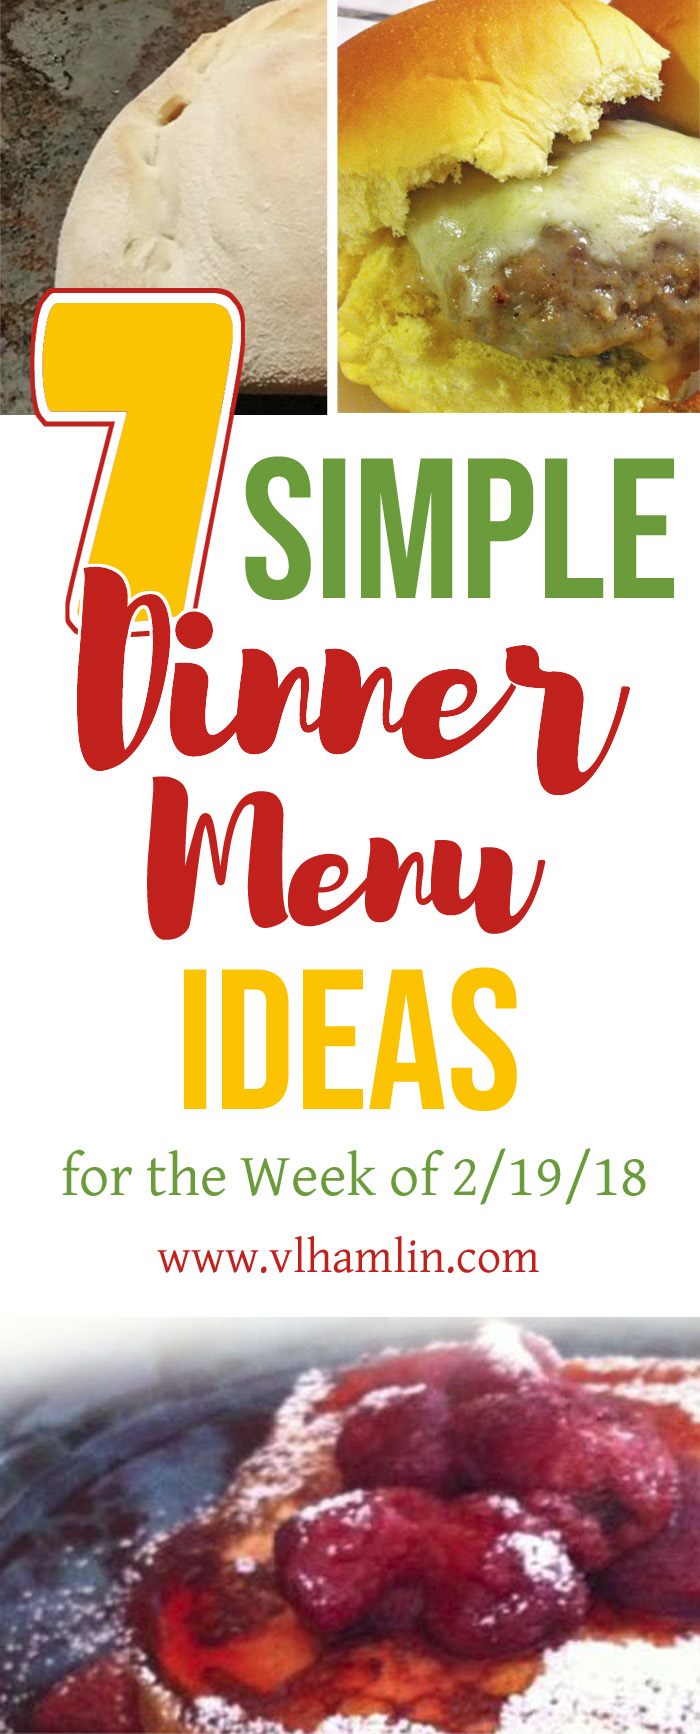 7 Simple Dinner Menu Ideas